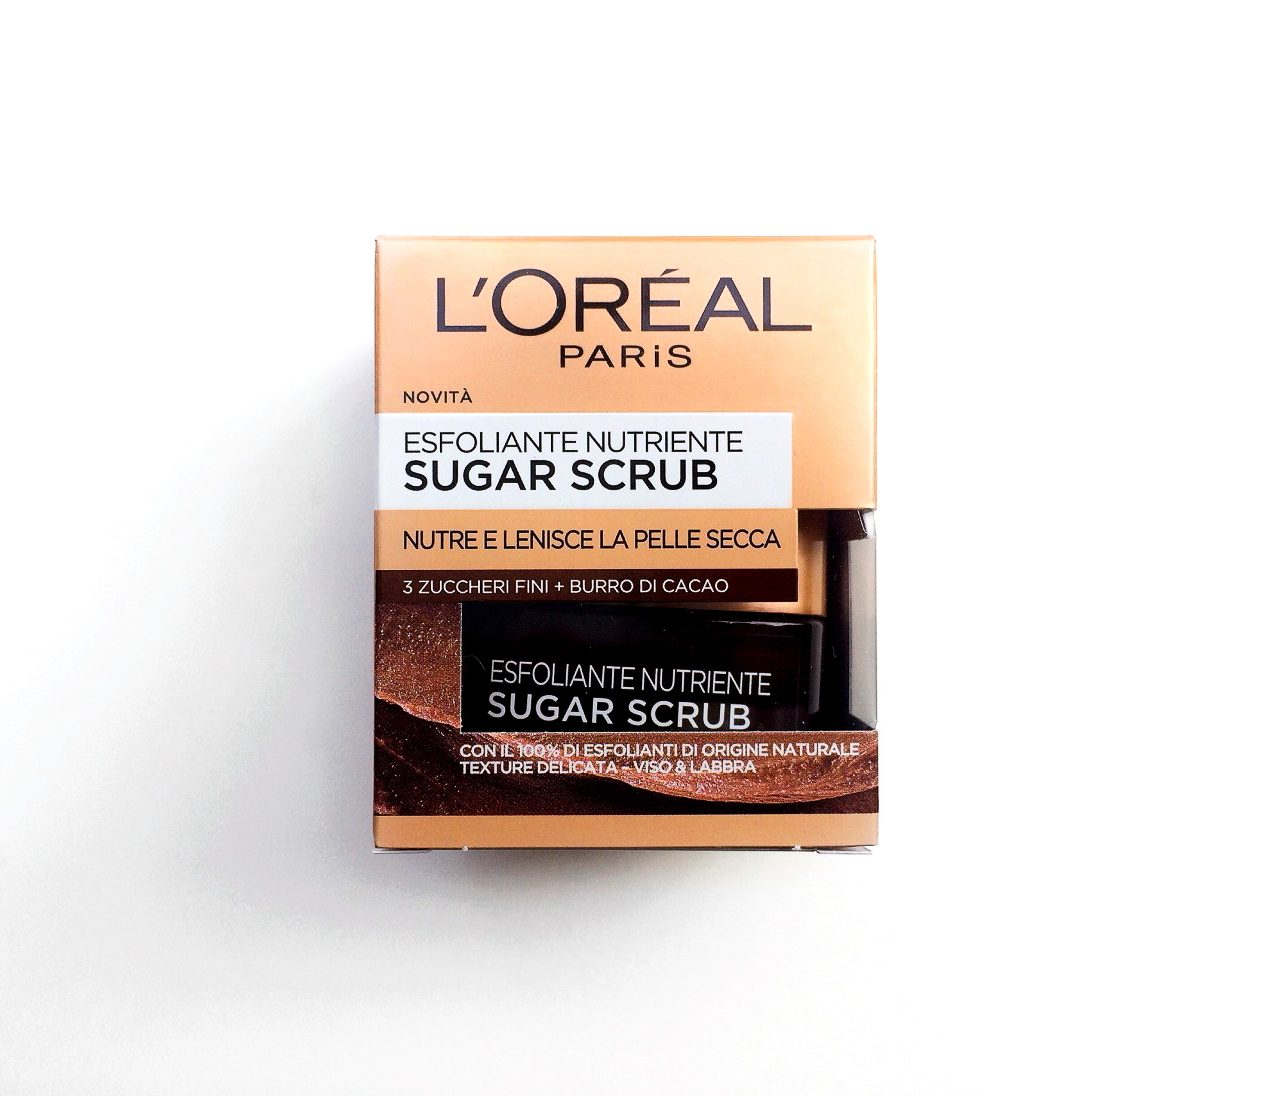 L'Oréal Pure Sugar Nourish & Soften Face Scrub | Review